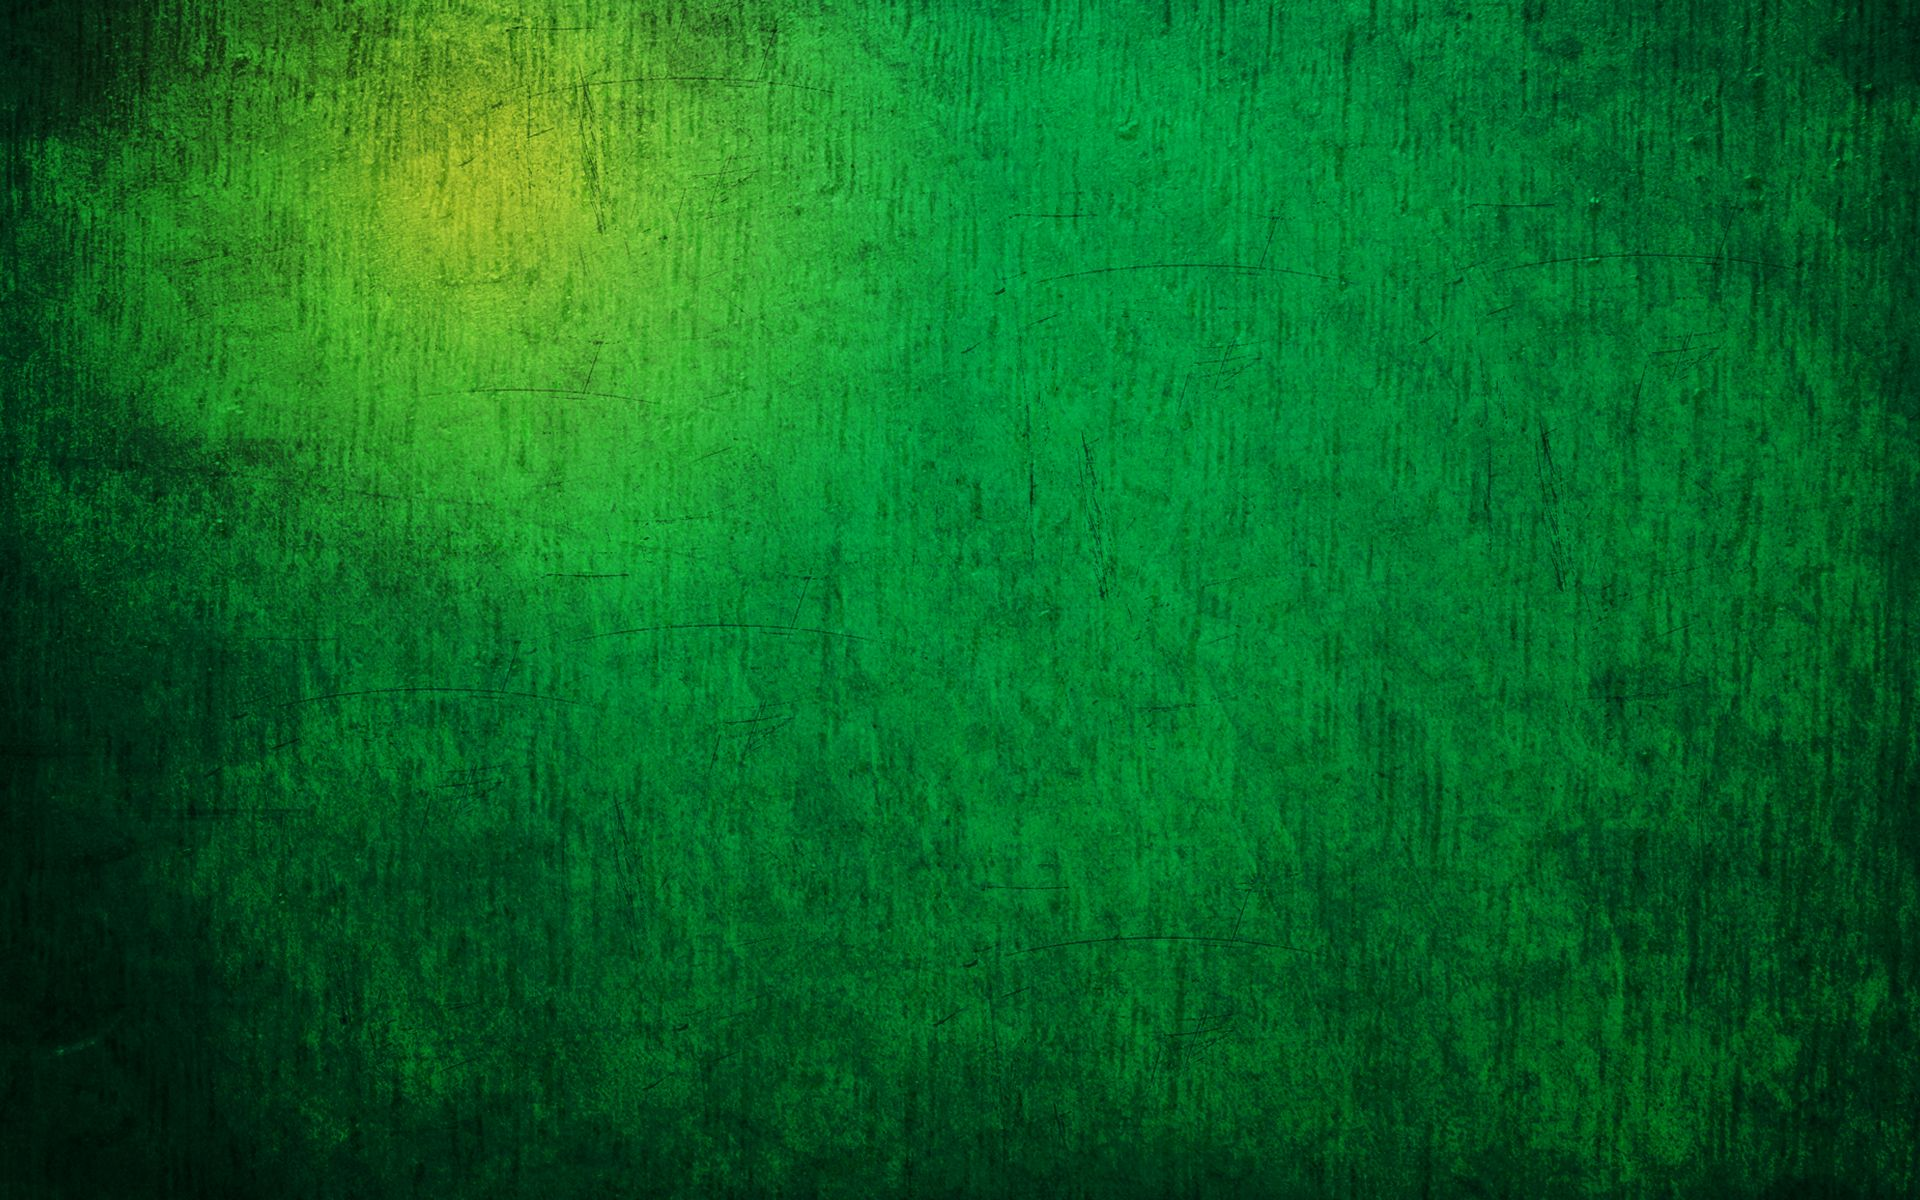 Green Background 21869 Dark Green Background Green Backgrounds Green Wallpaper